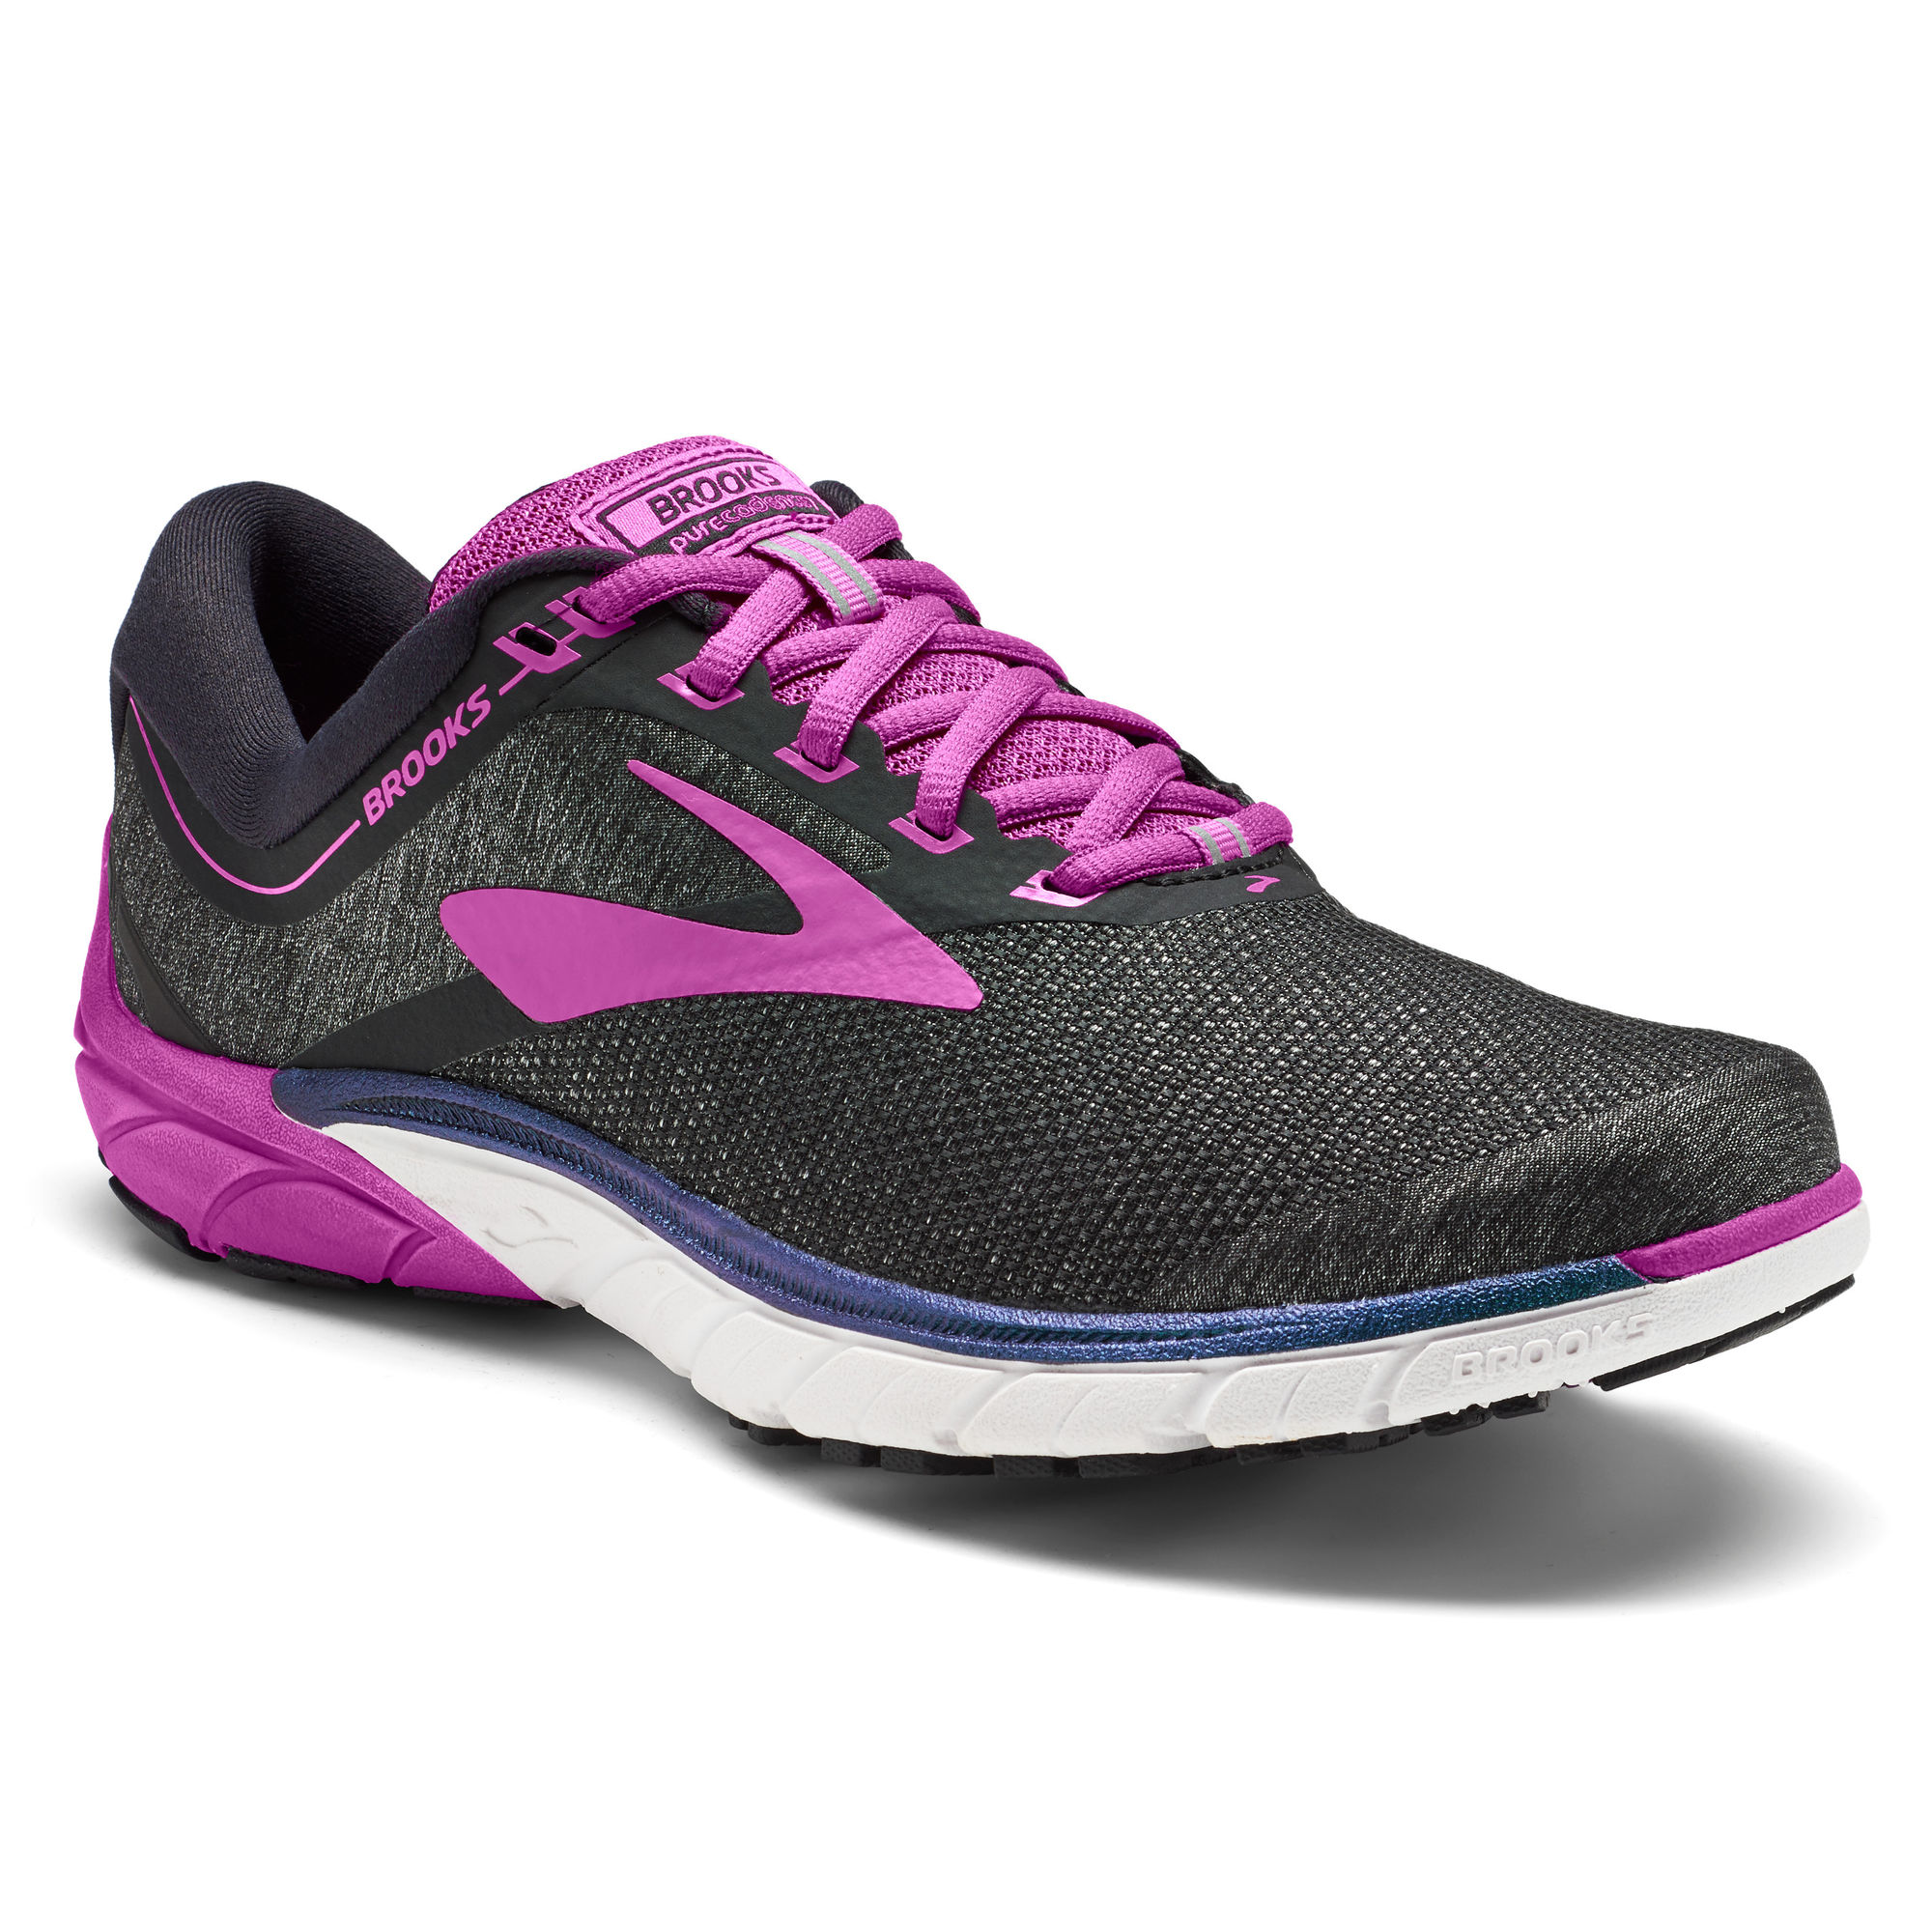 Brooks Lady PureCadence 7 in Schwarz Purple